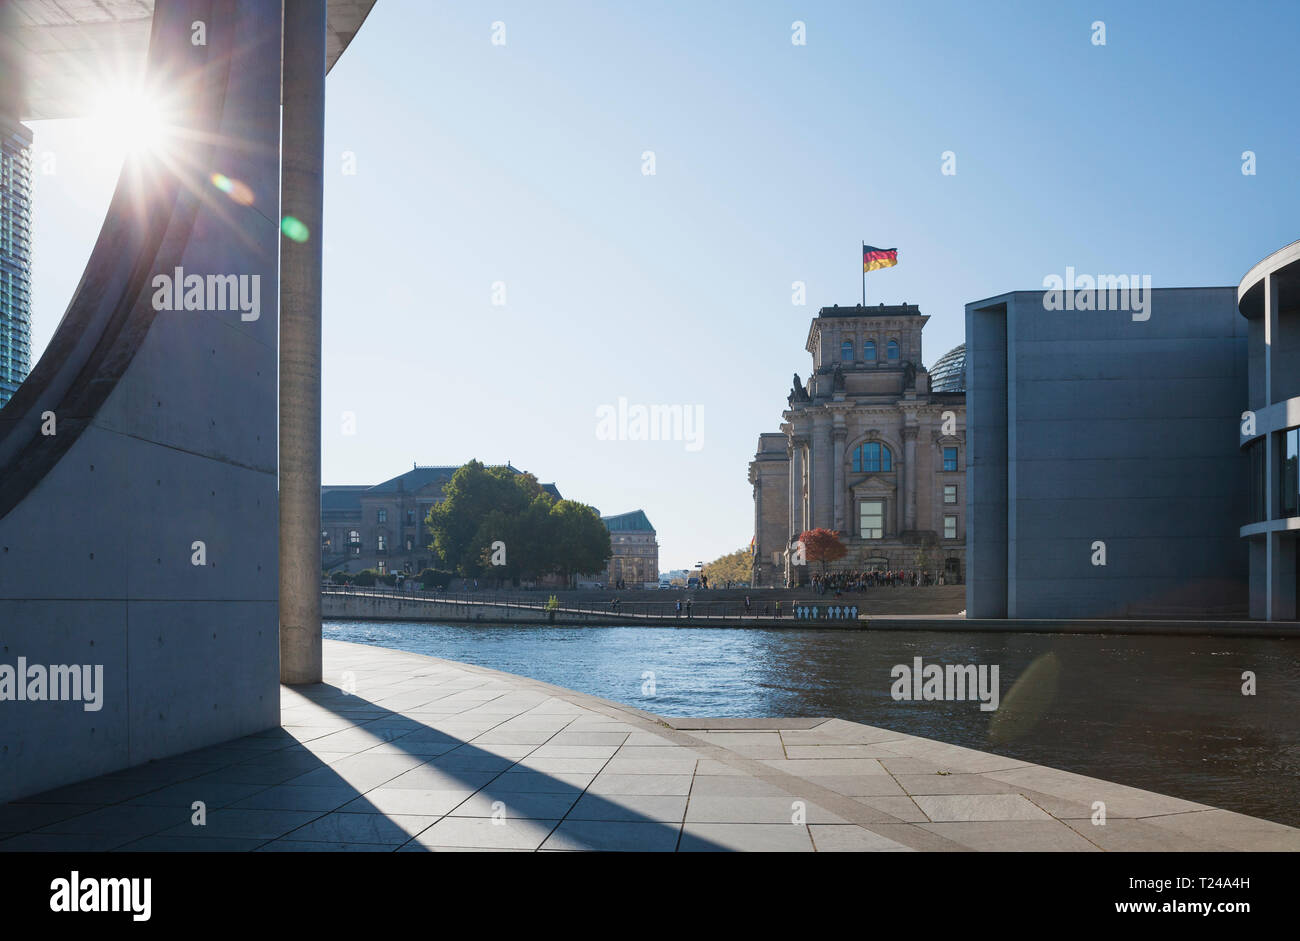 Germany, Berlin, disctrict Mitte, Paul-Loebe-Building and Marie-Elisabeth-Lueders-Building at Spree river, symbolic picture for opened Berlin Wall - Stock Image